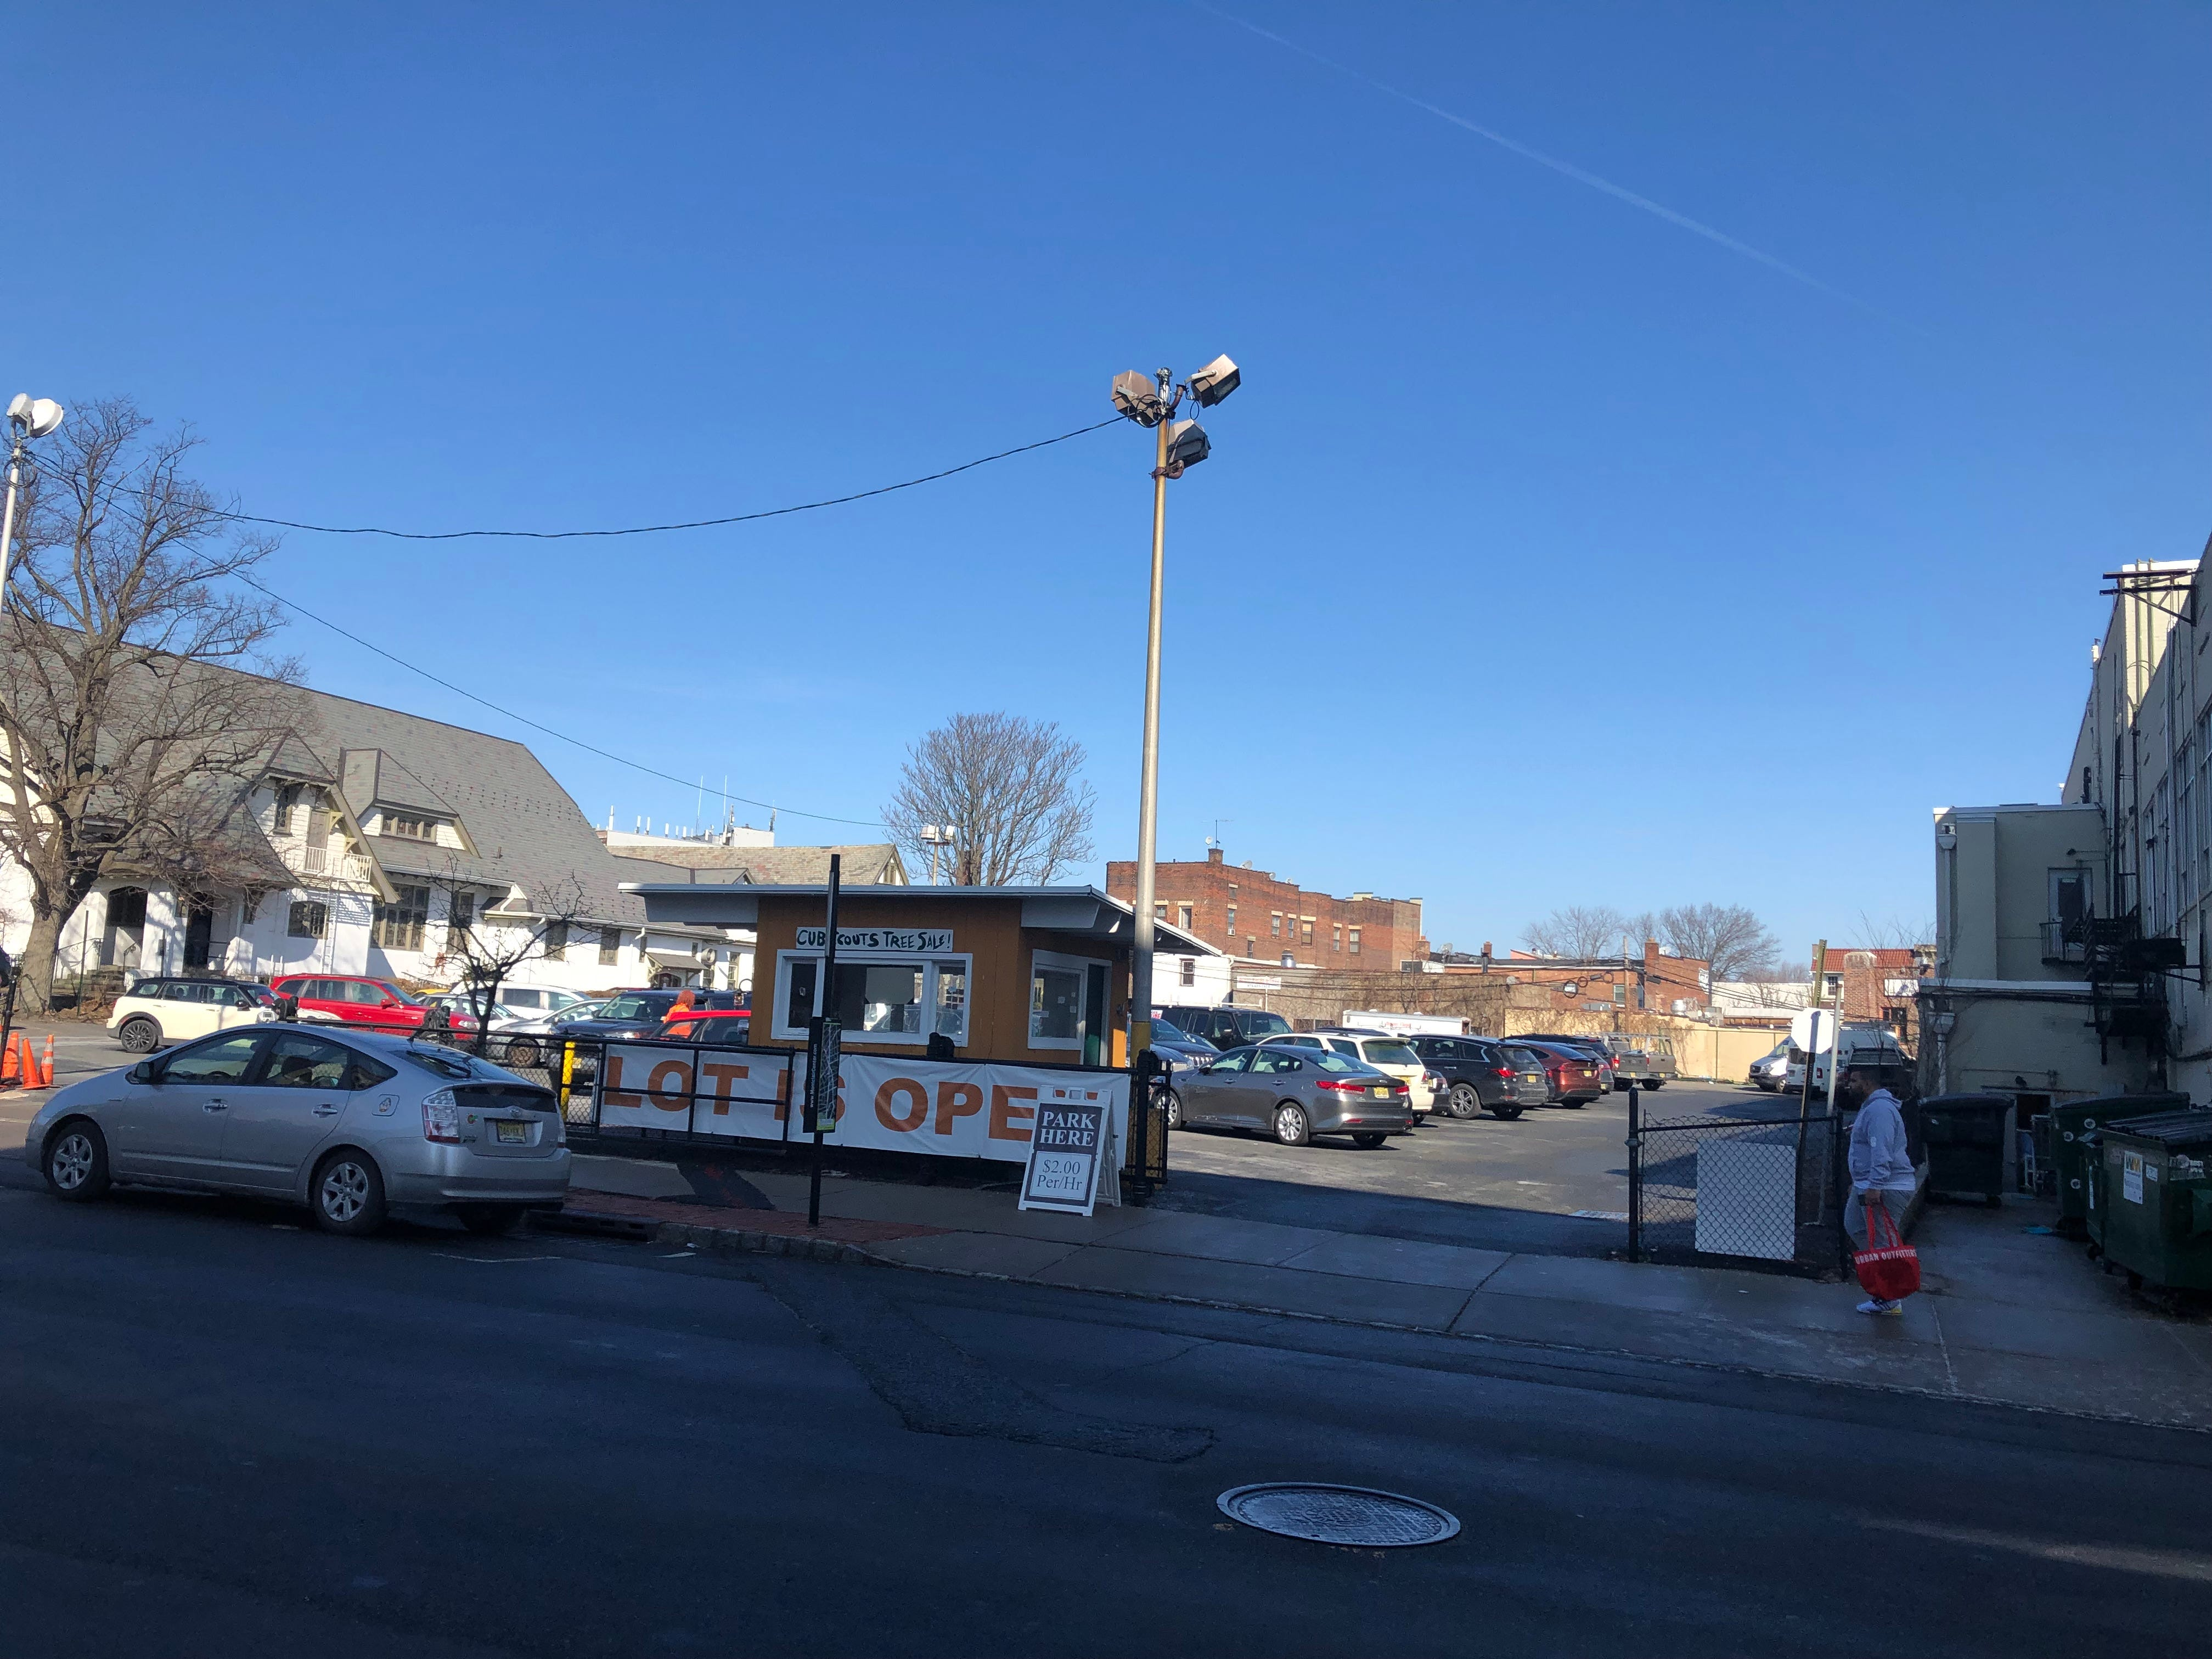 The former parking lot for Hahne's department store on Church Street will become 74 apartments under a new plan submitted to the town by its owners, Kensington Urban Renewal. Montclair regulations permit only 65 units but the developer will build 74 in exchange for funds for a community space.